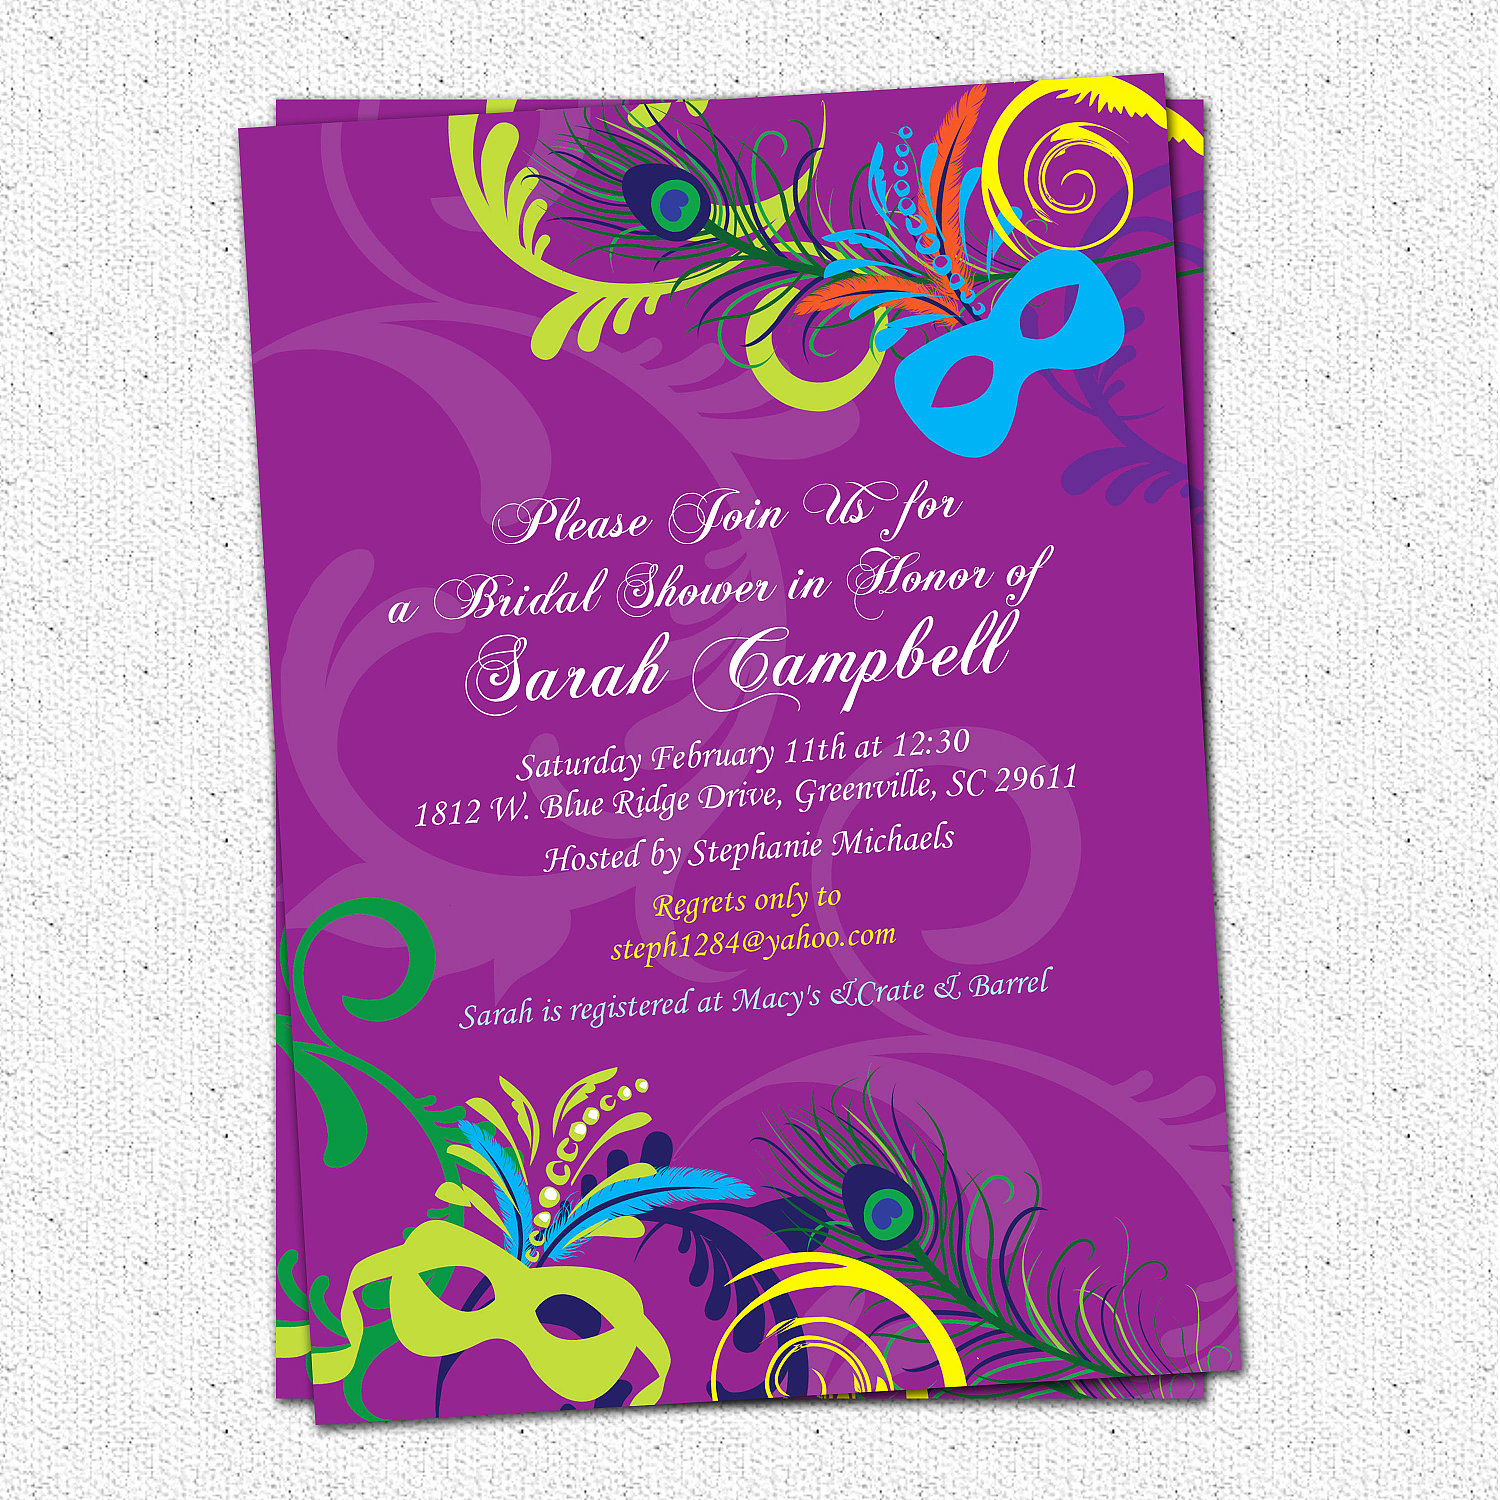 Mardi Gras Invitation Ideas Unique Bridal Shower Invitation Printable Mardigras Mardi Gras